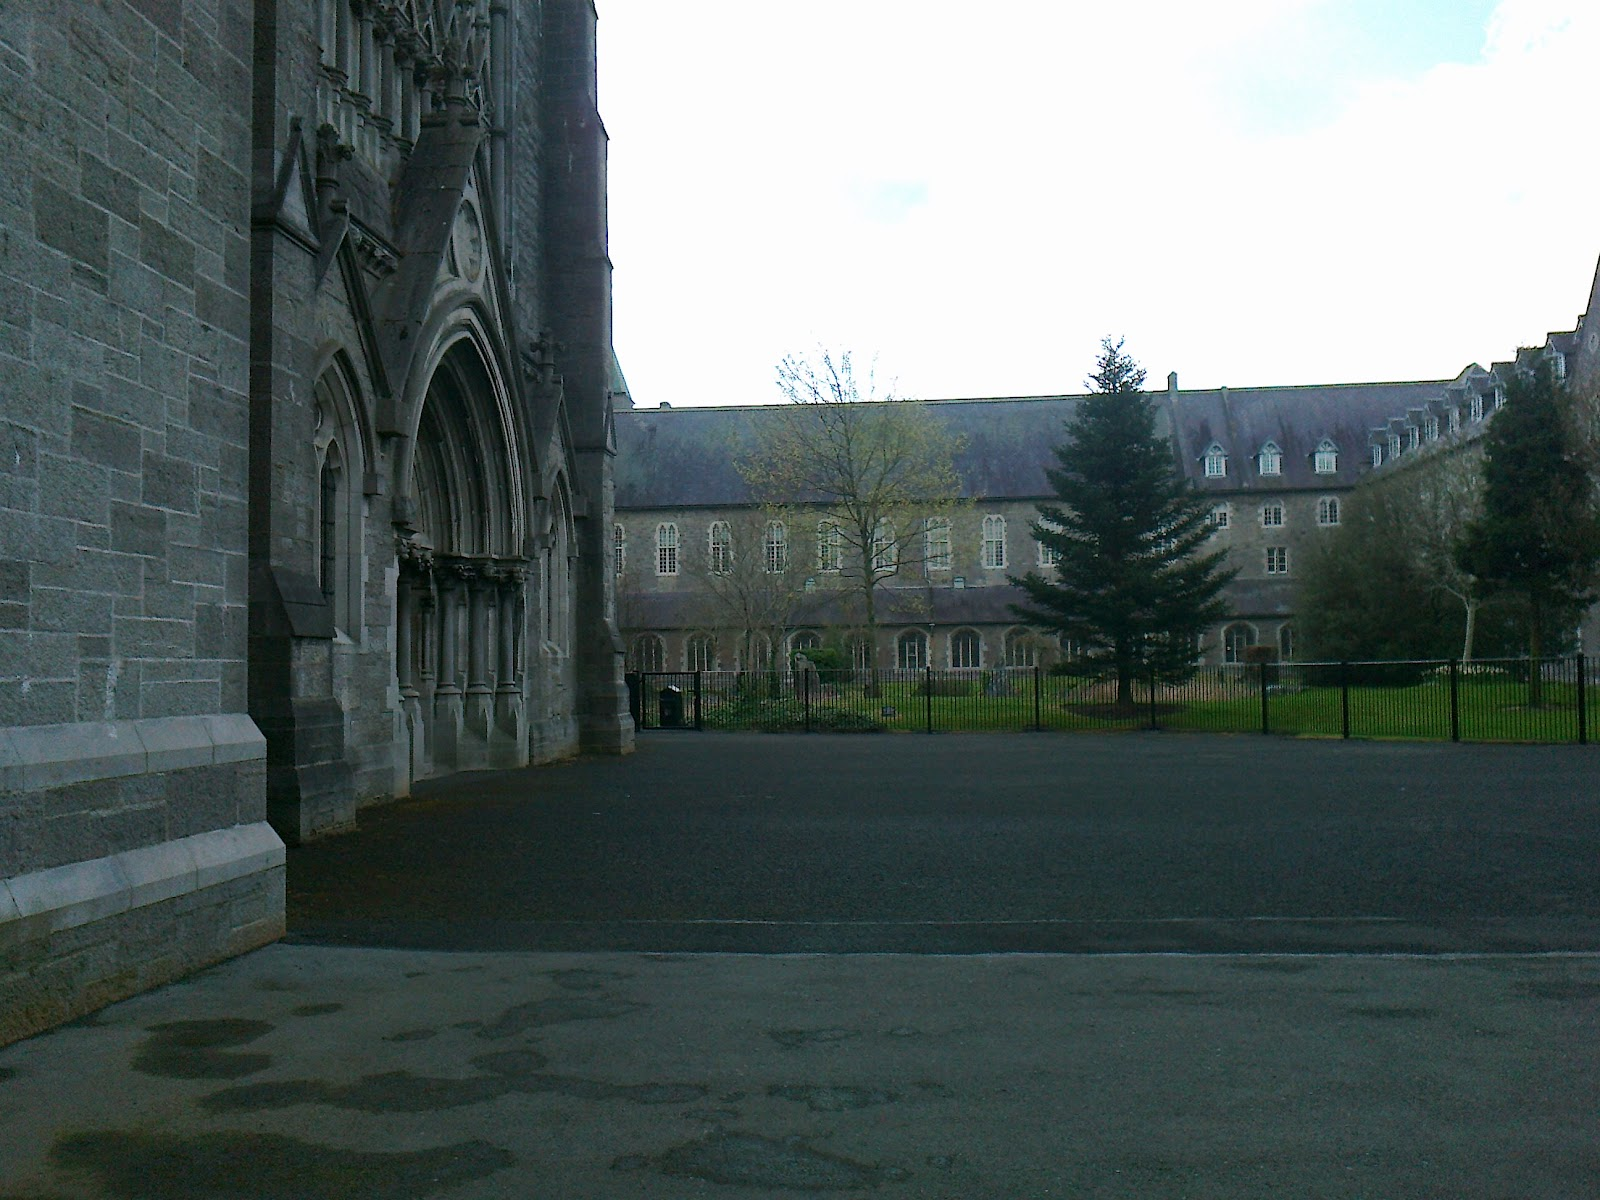 A Brief Glimpse Into The Bubble Maynooth Scenery And